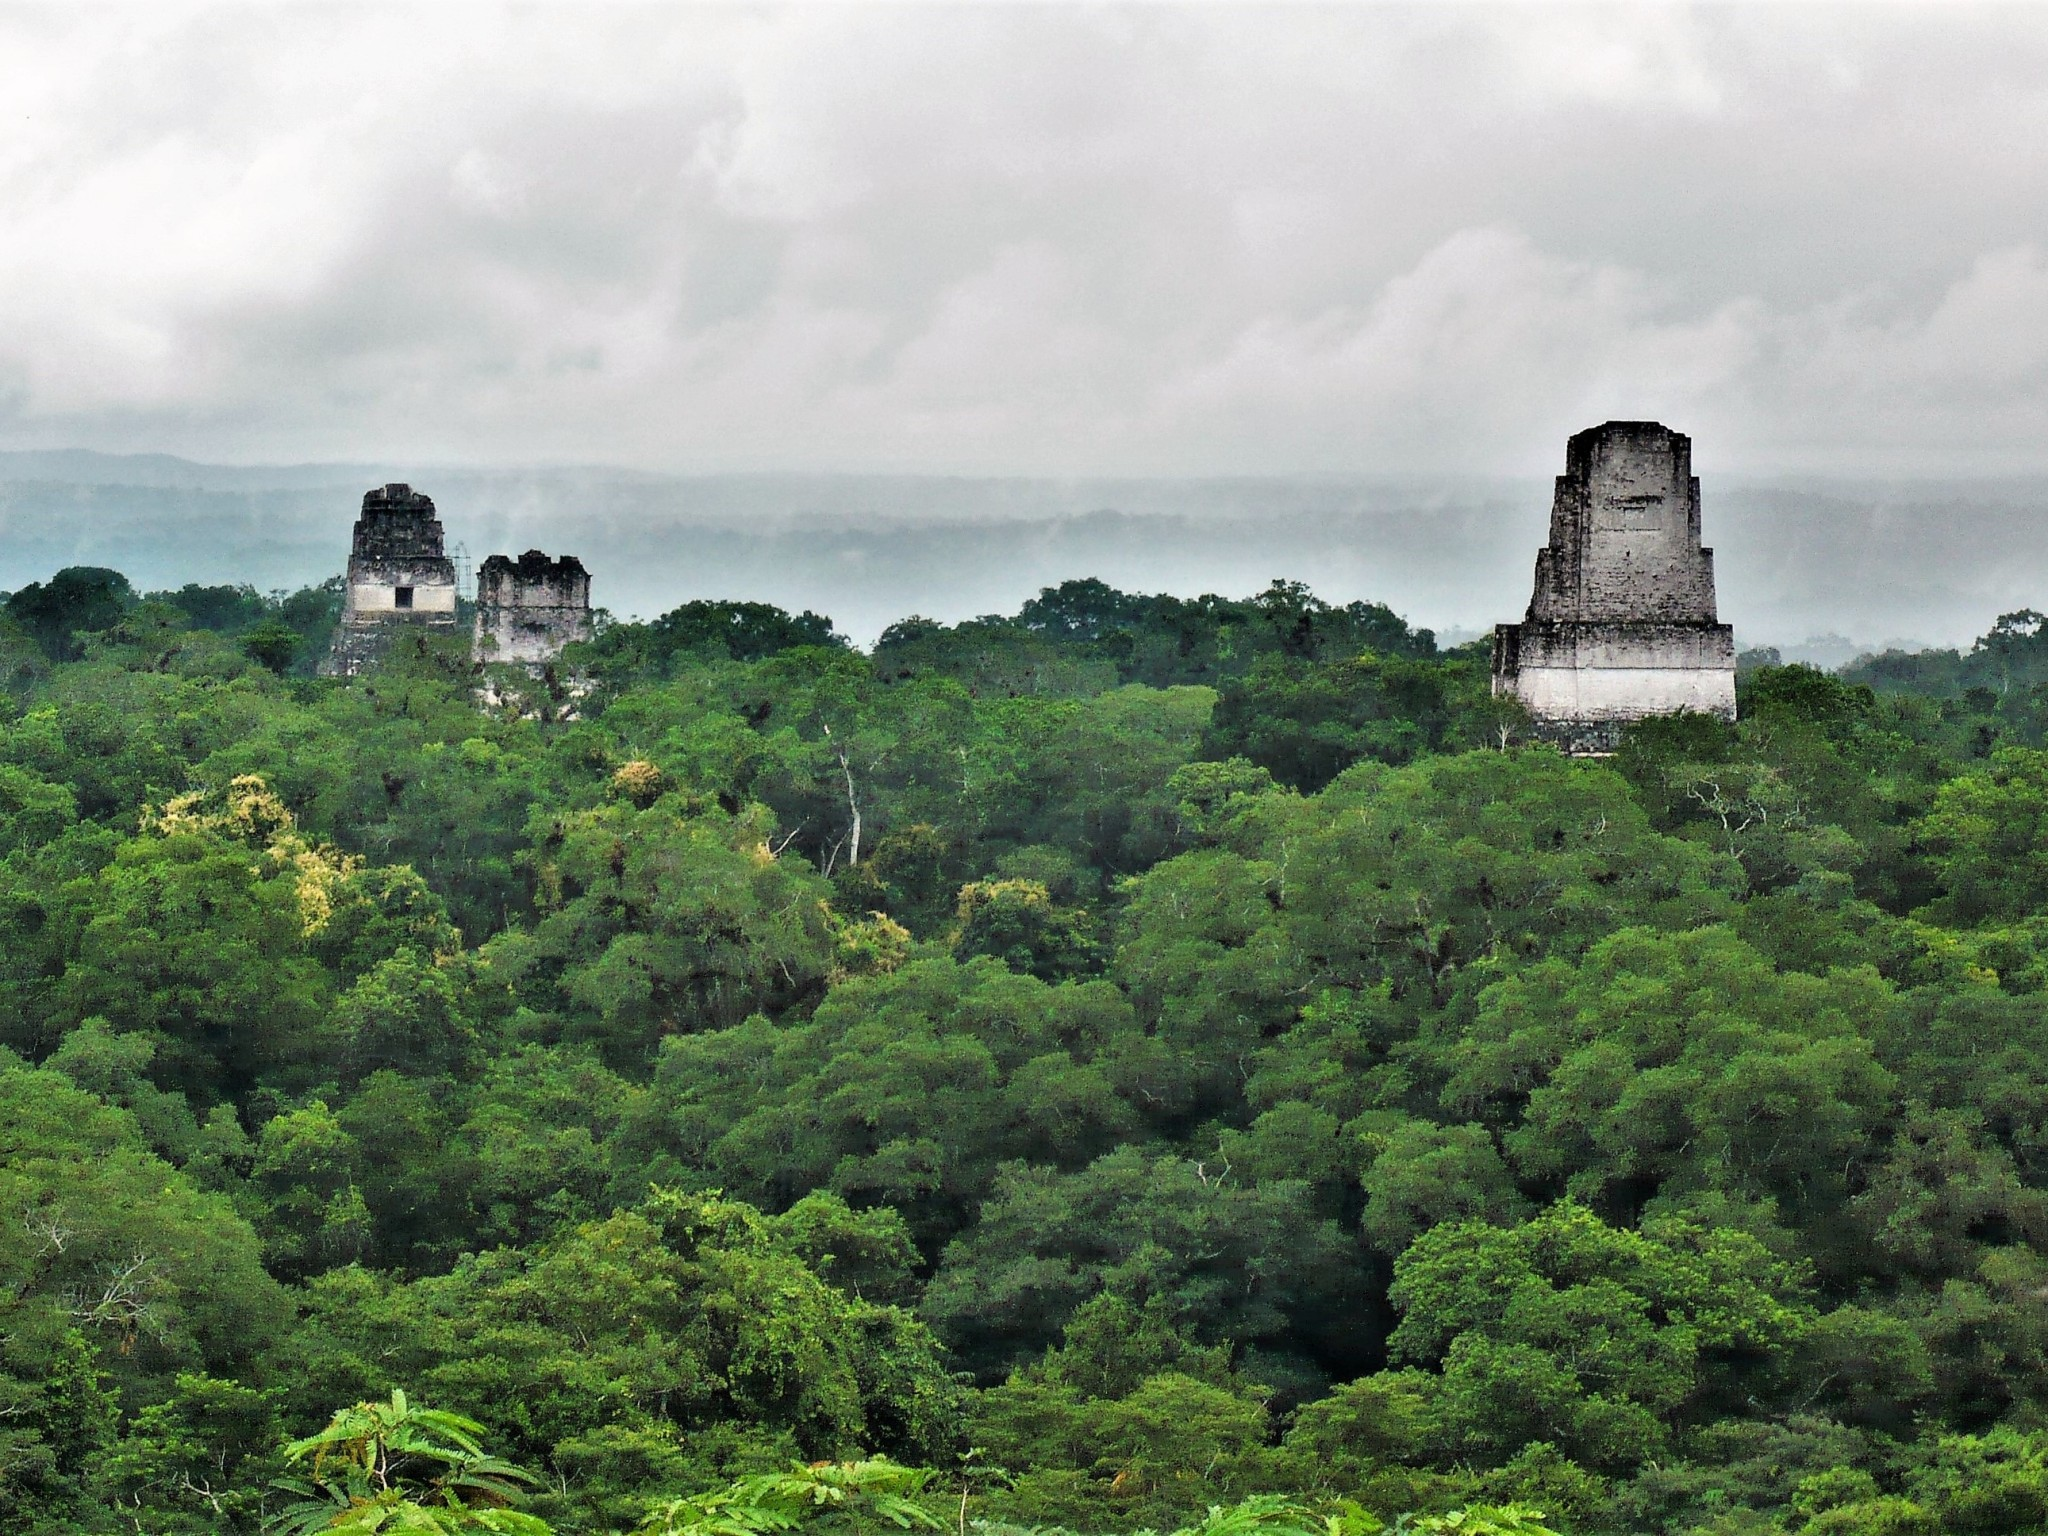 A scenic view of the peaks of three Mayan temples piercing the green jungle canopy.